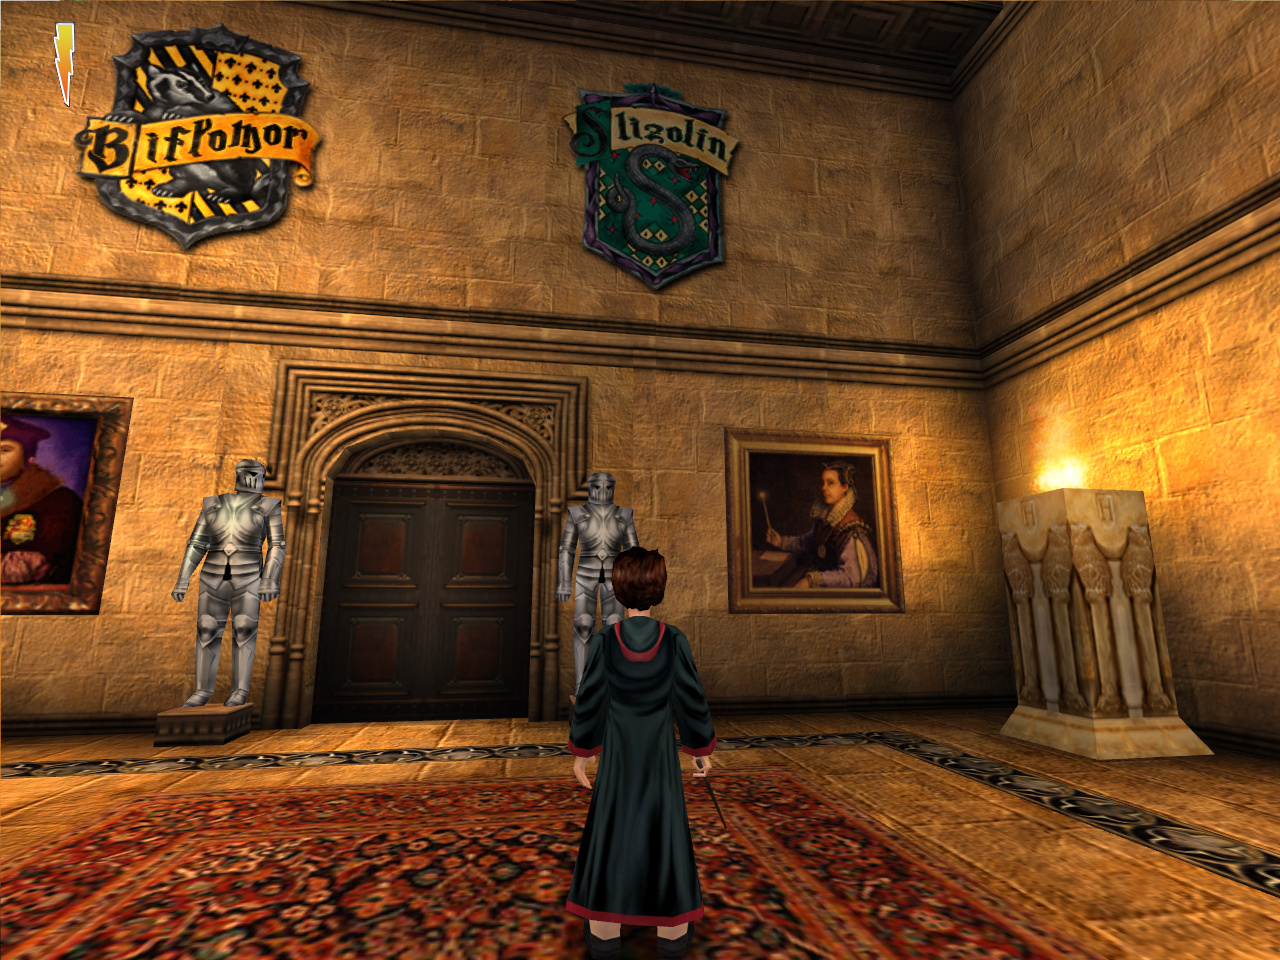 For 2001  Harry Potter and the Philosopher Stone  PC  has some     ScreenshotFor 2001  Harry Potter